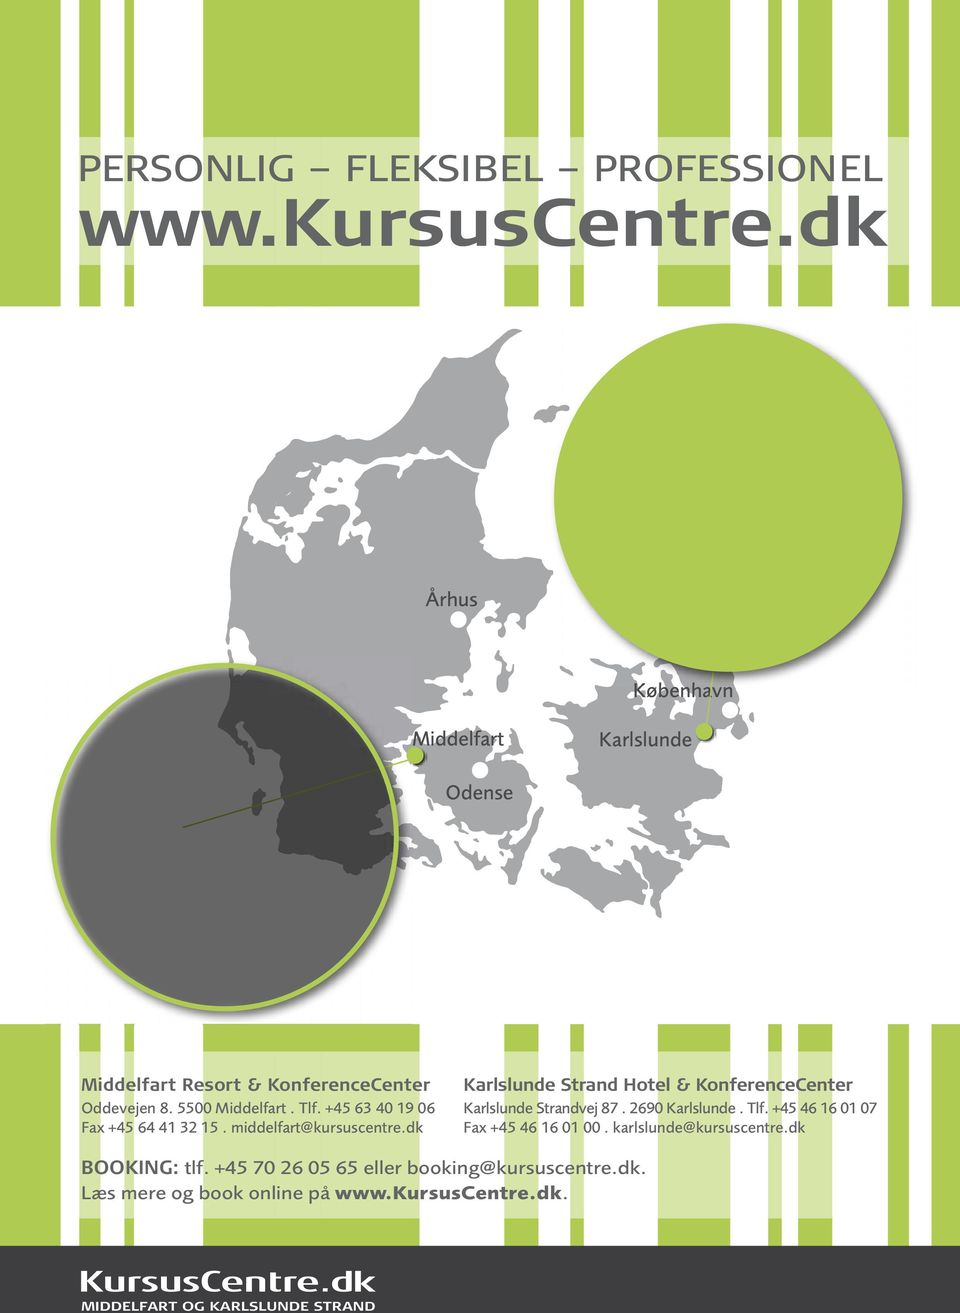 +45 63 40 19 06 Fax +45 64 41 32 15. middelfart@kursuscentre.